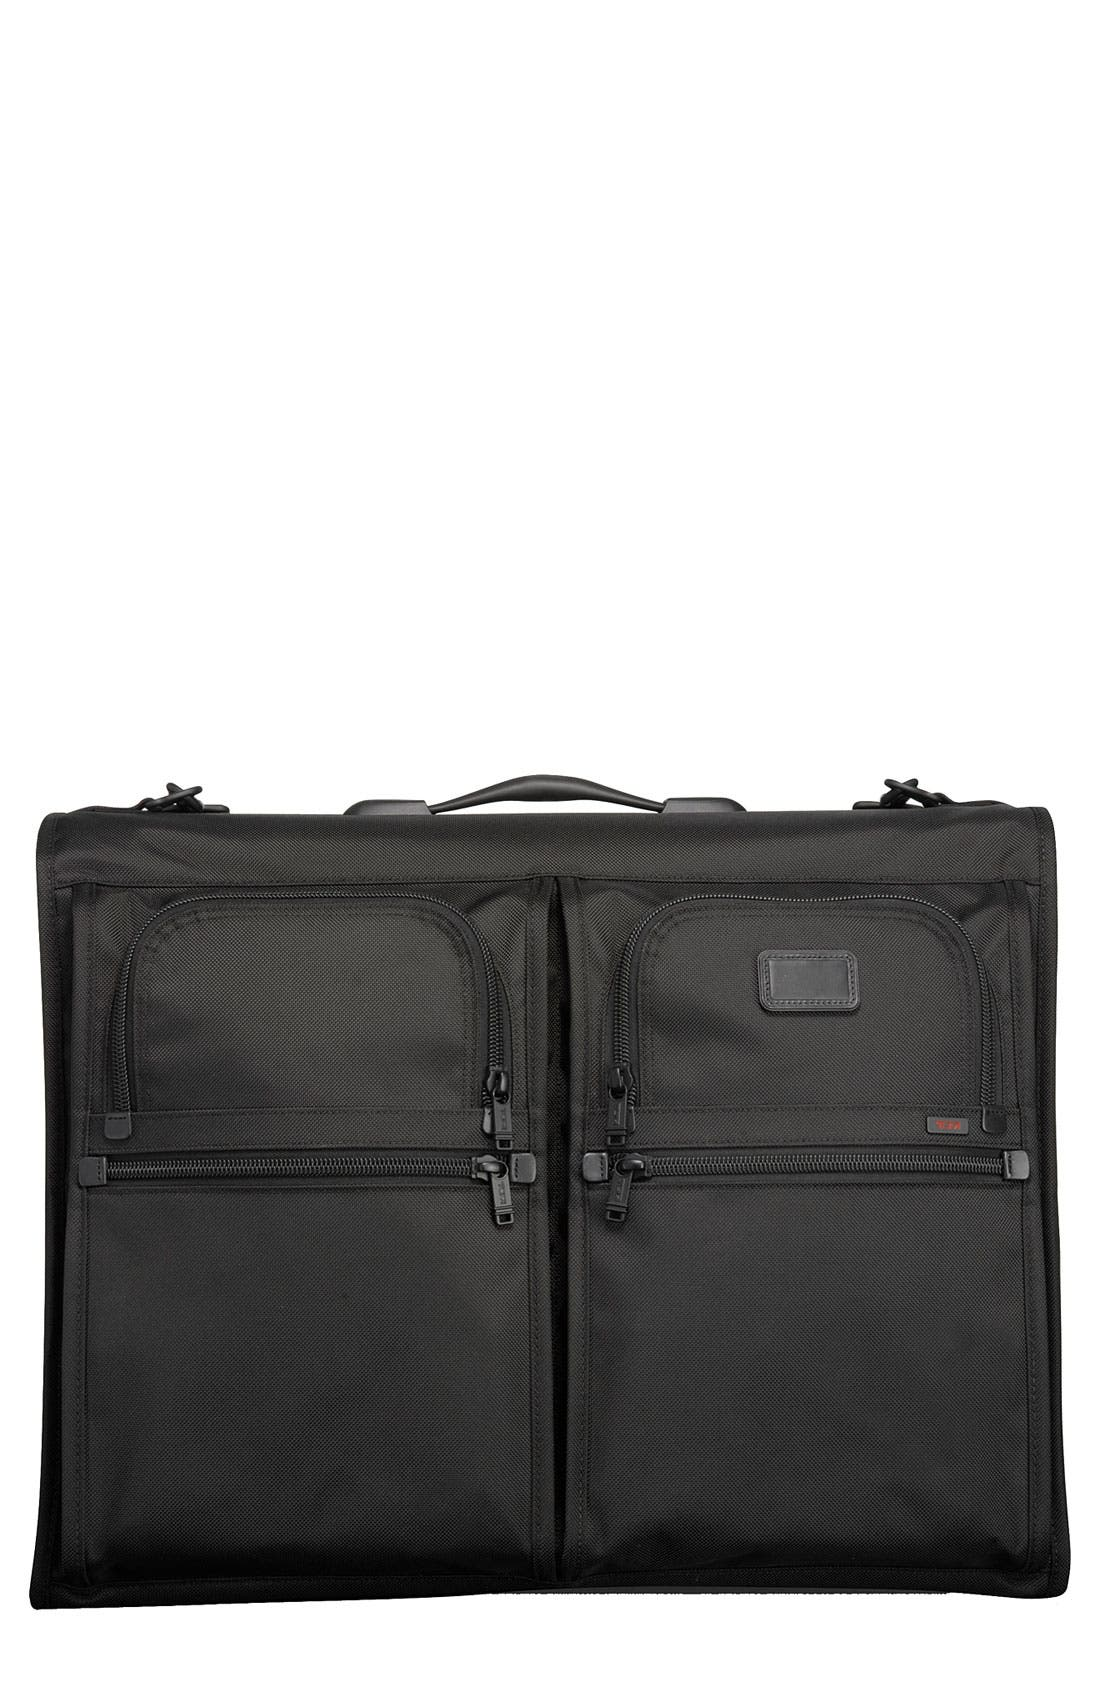 Alternate Image 1 Selected - Tumi 'Alpha' Classic Garment Bag